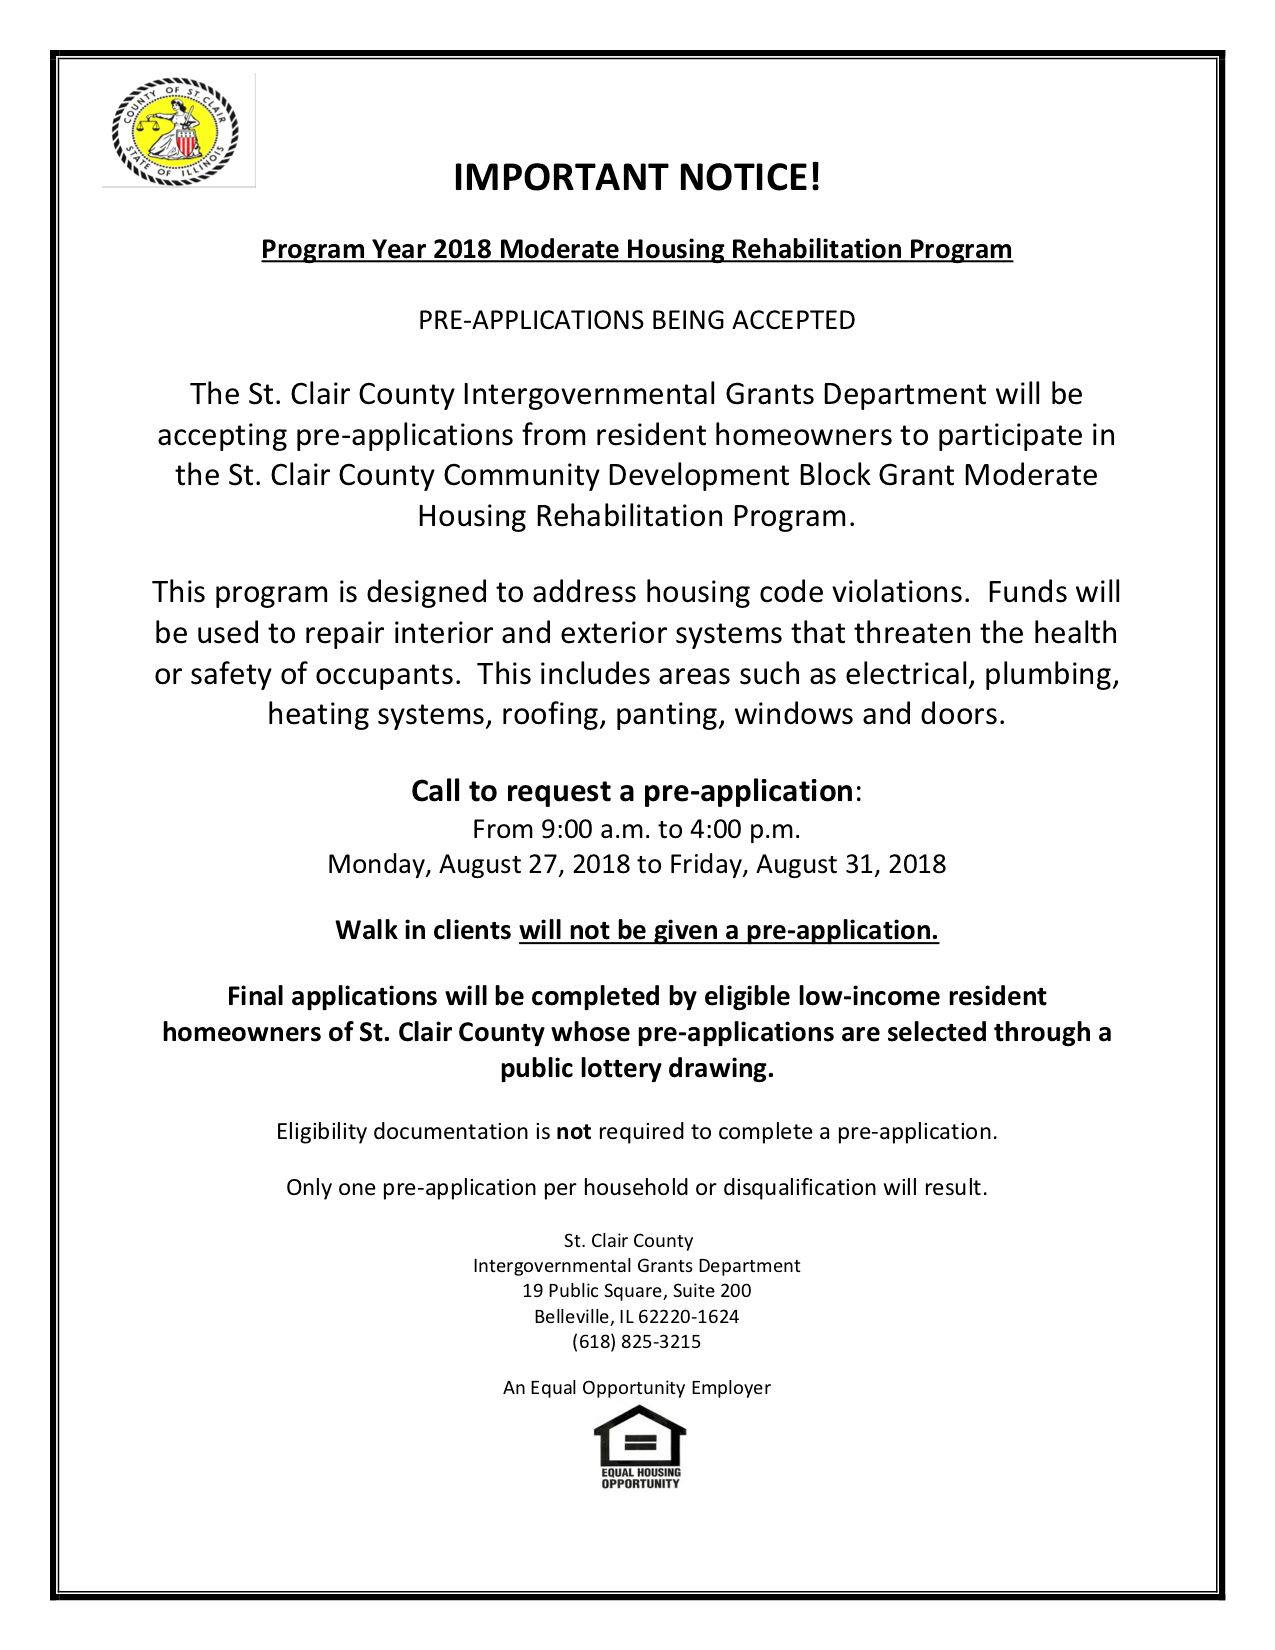 2018 Rehab pre-application flyer